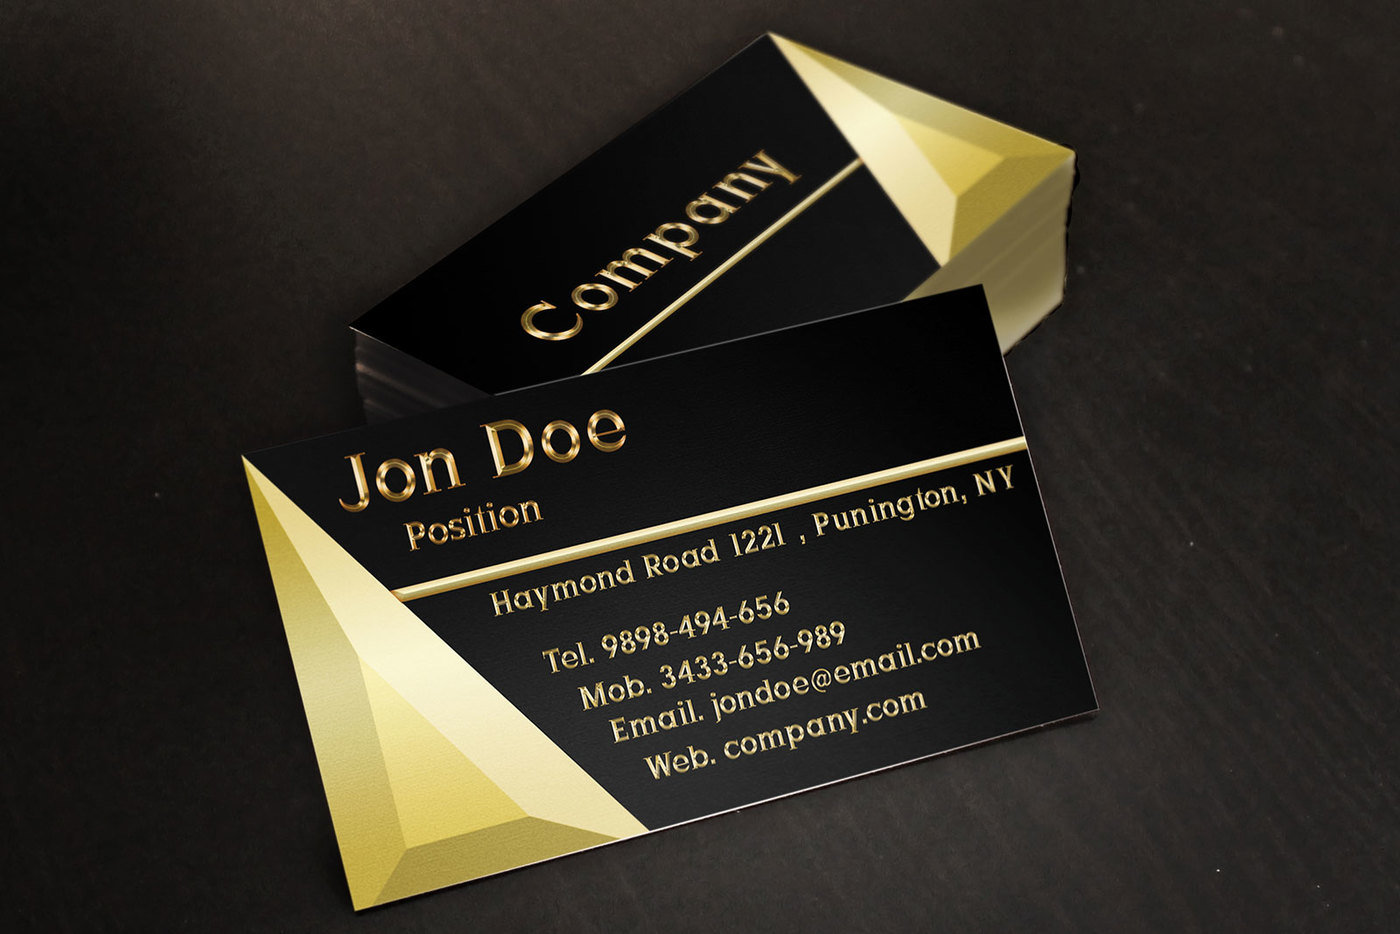 Black and Gold Jewelry Store Business Card Template by Borce ...